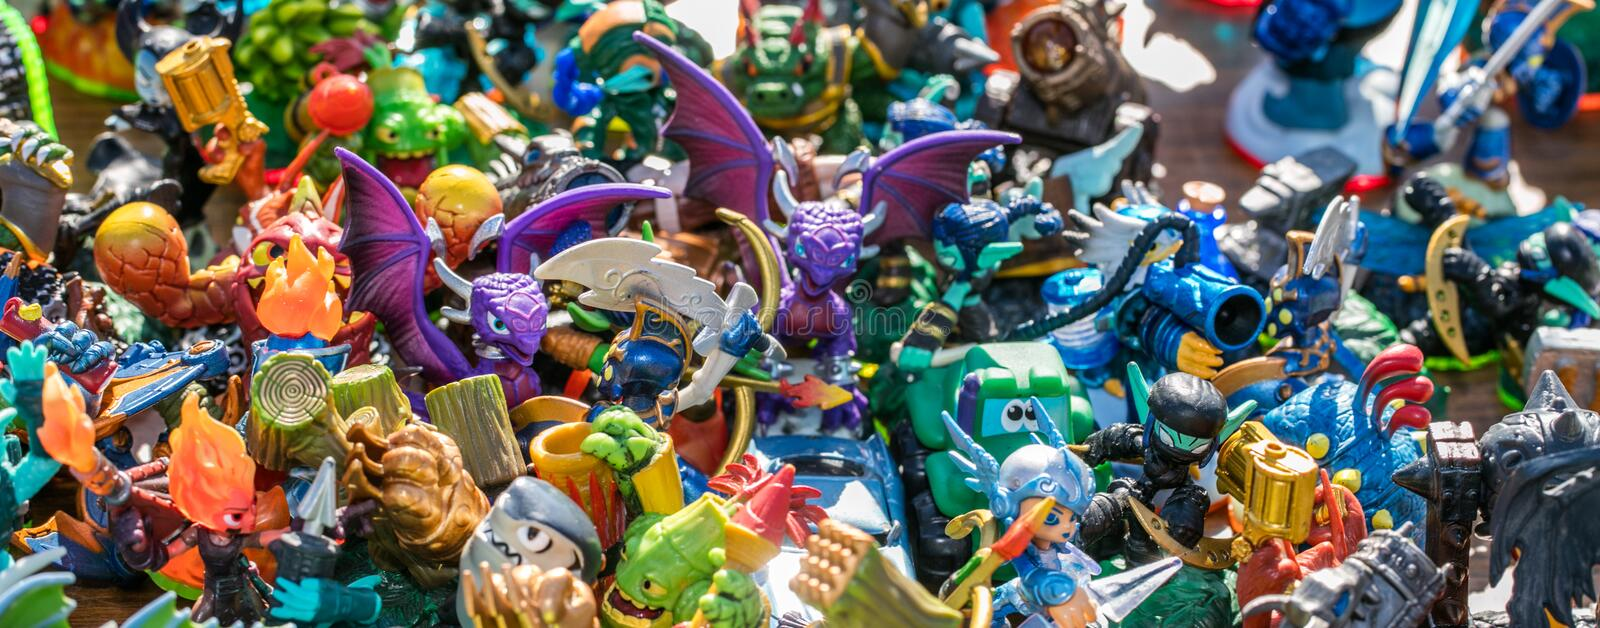 Plastic miniatures sold for childhood consumption at garage sale royalty free stock photo